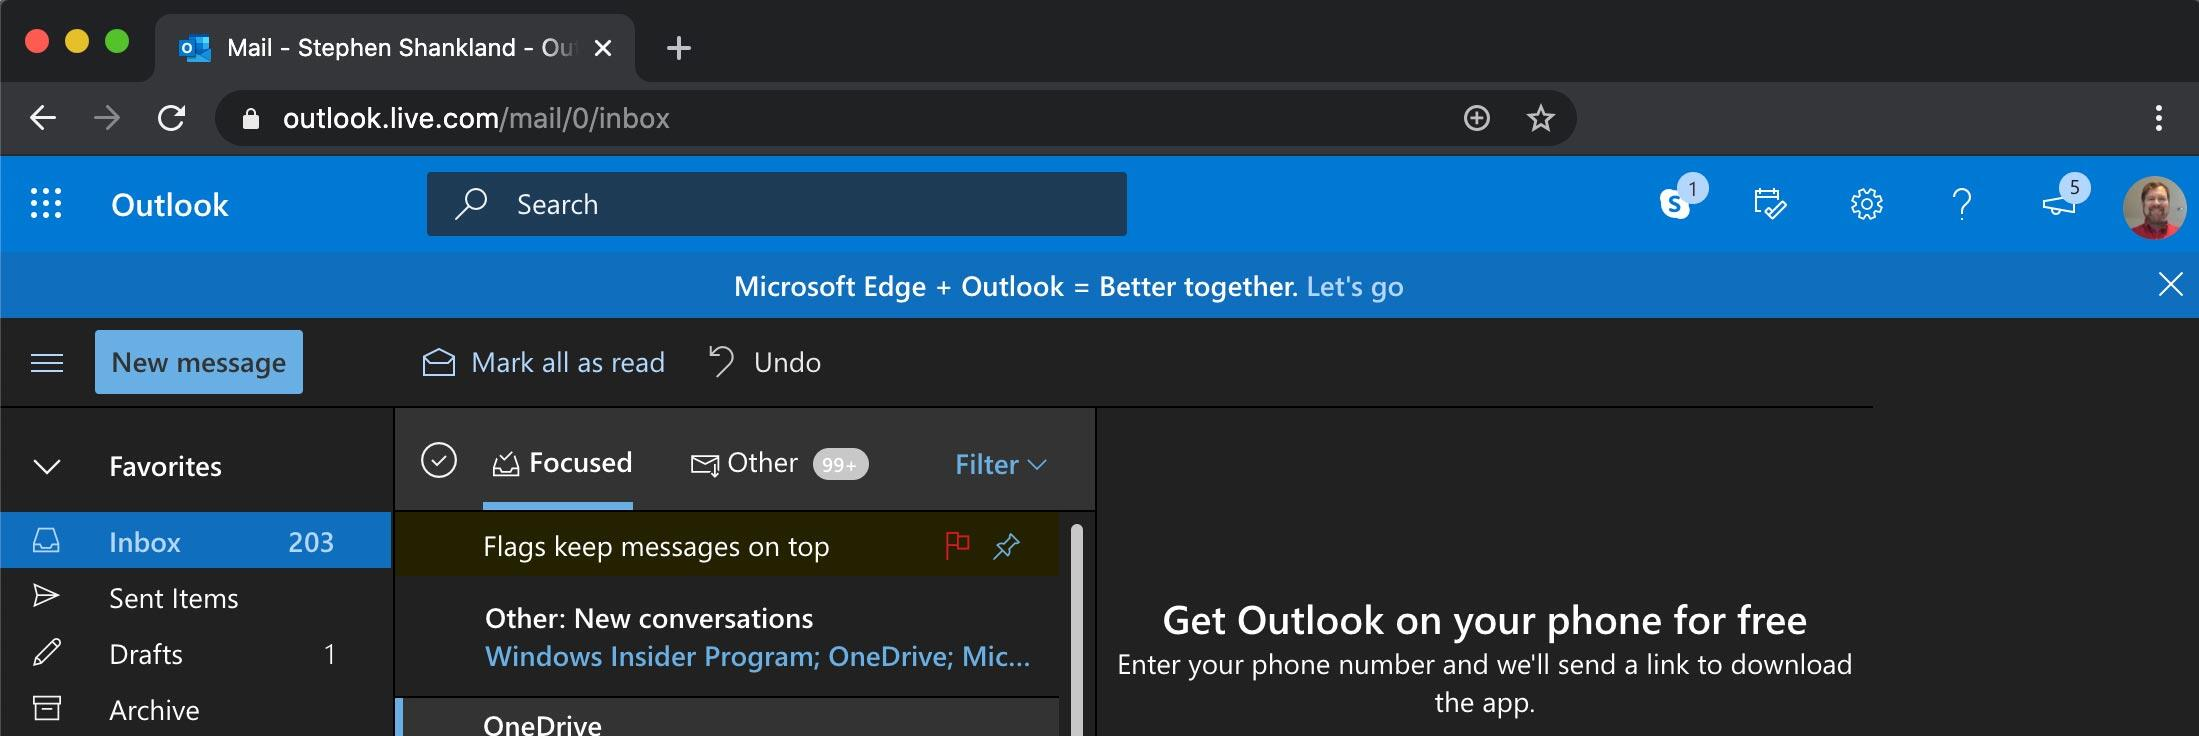 Microsoft Edge promo on Outlook.com